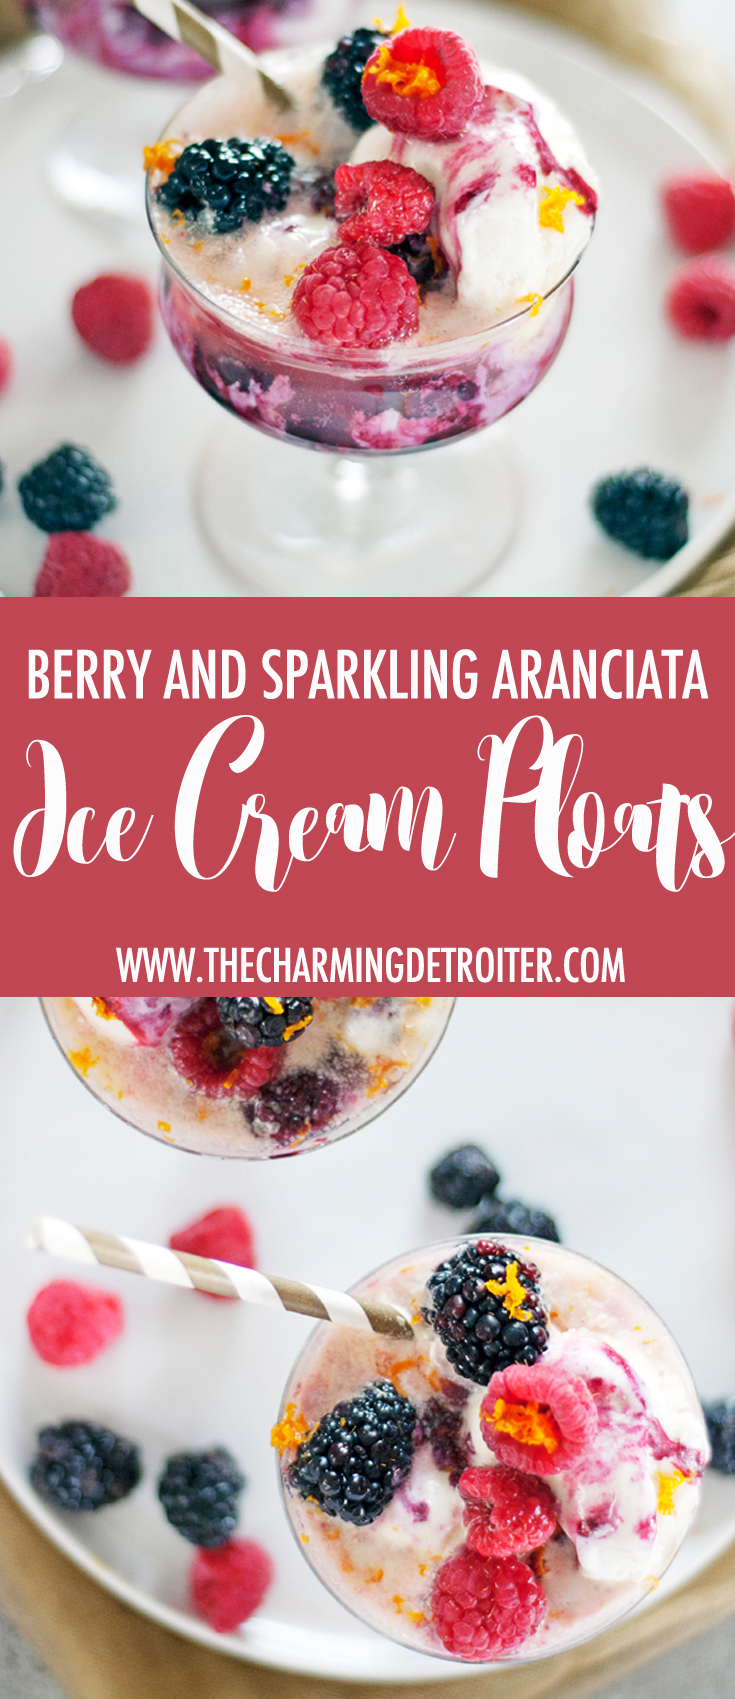 These simple ice cream floats are perfect for cooling down this summer! They feature a tasty berry syrup, fresh berries, and sparking aranciata.